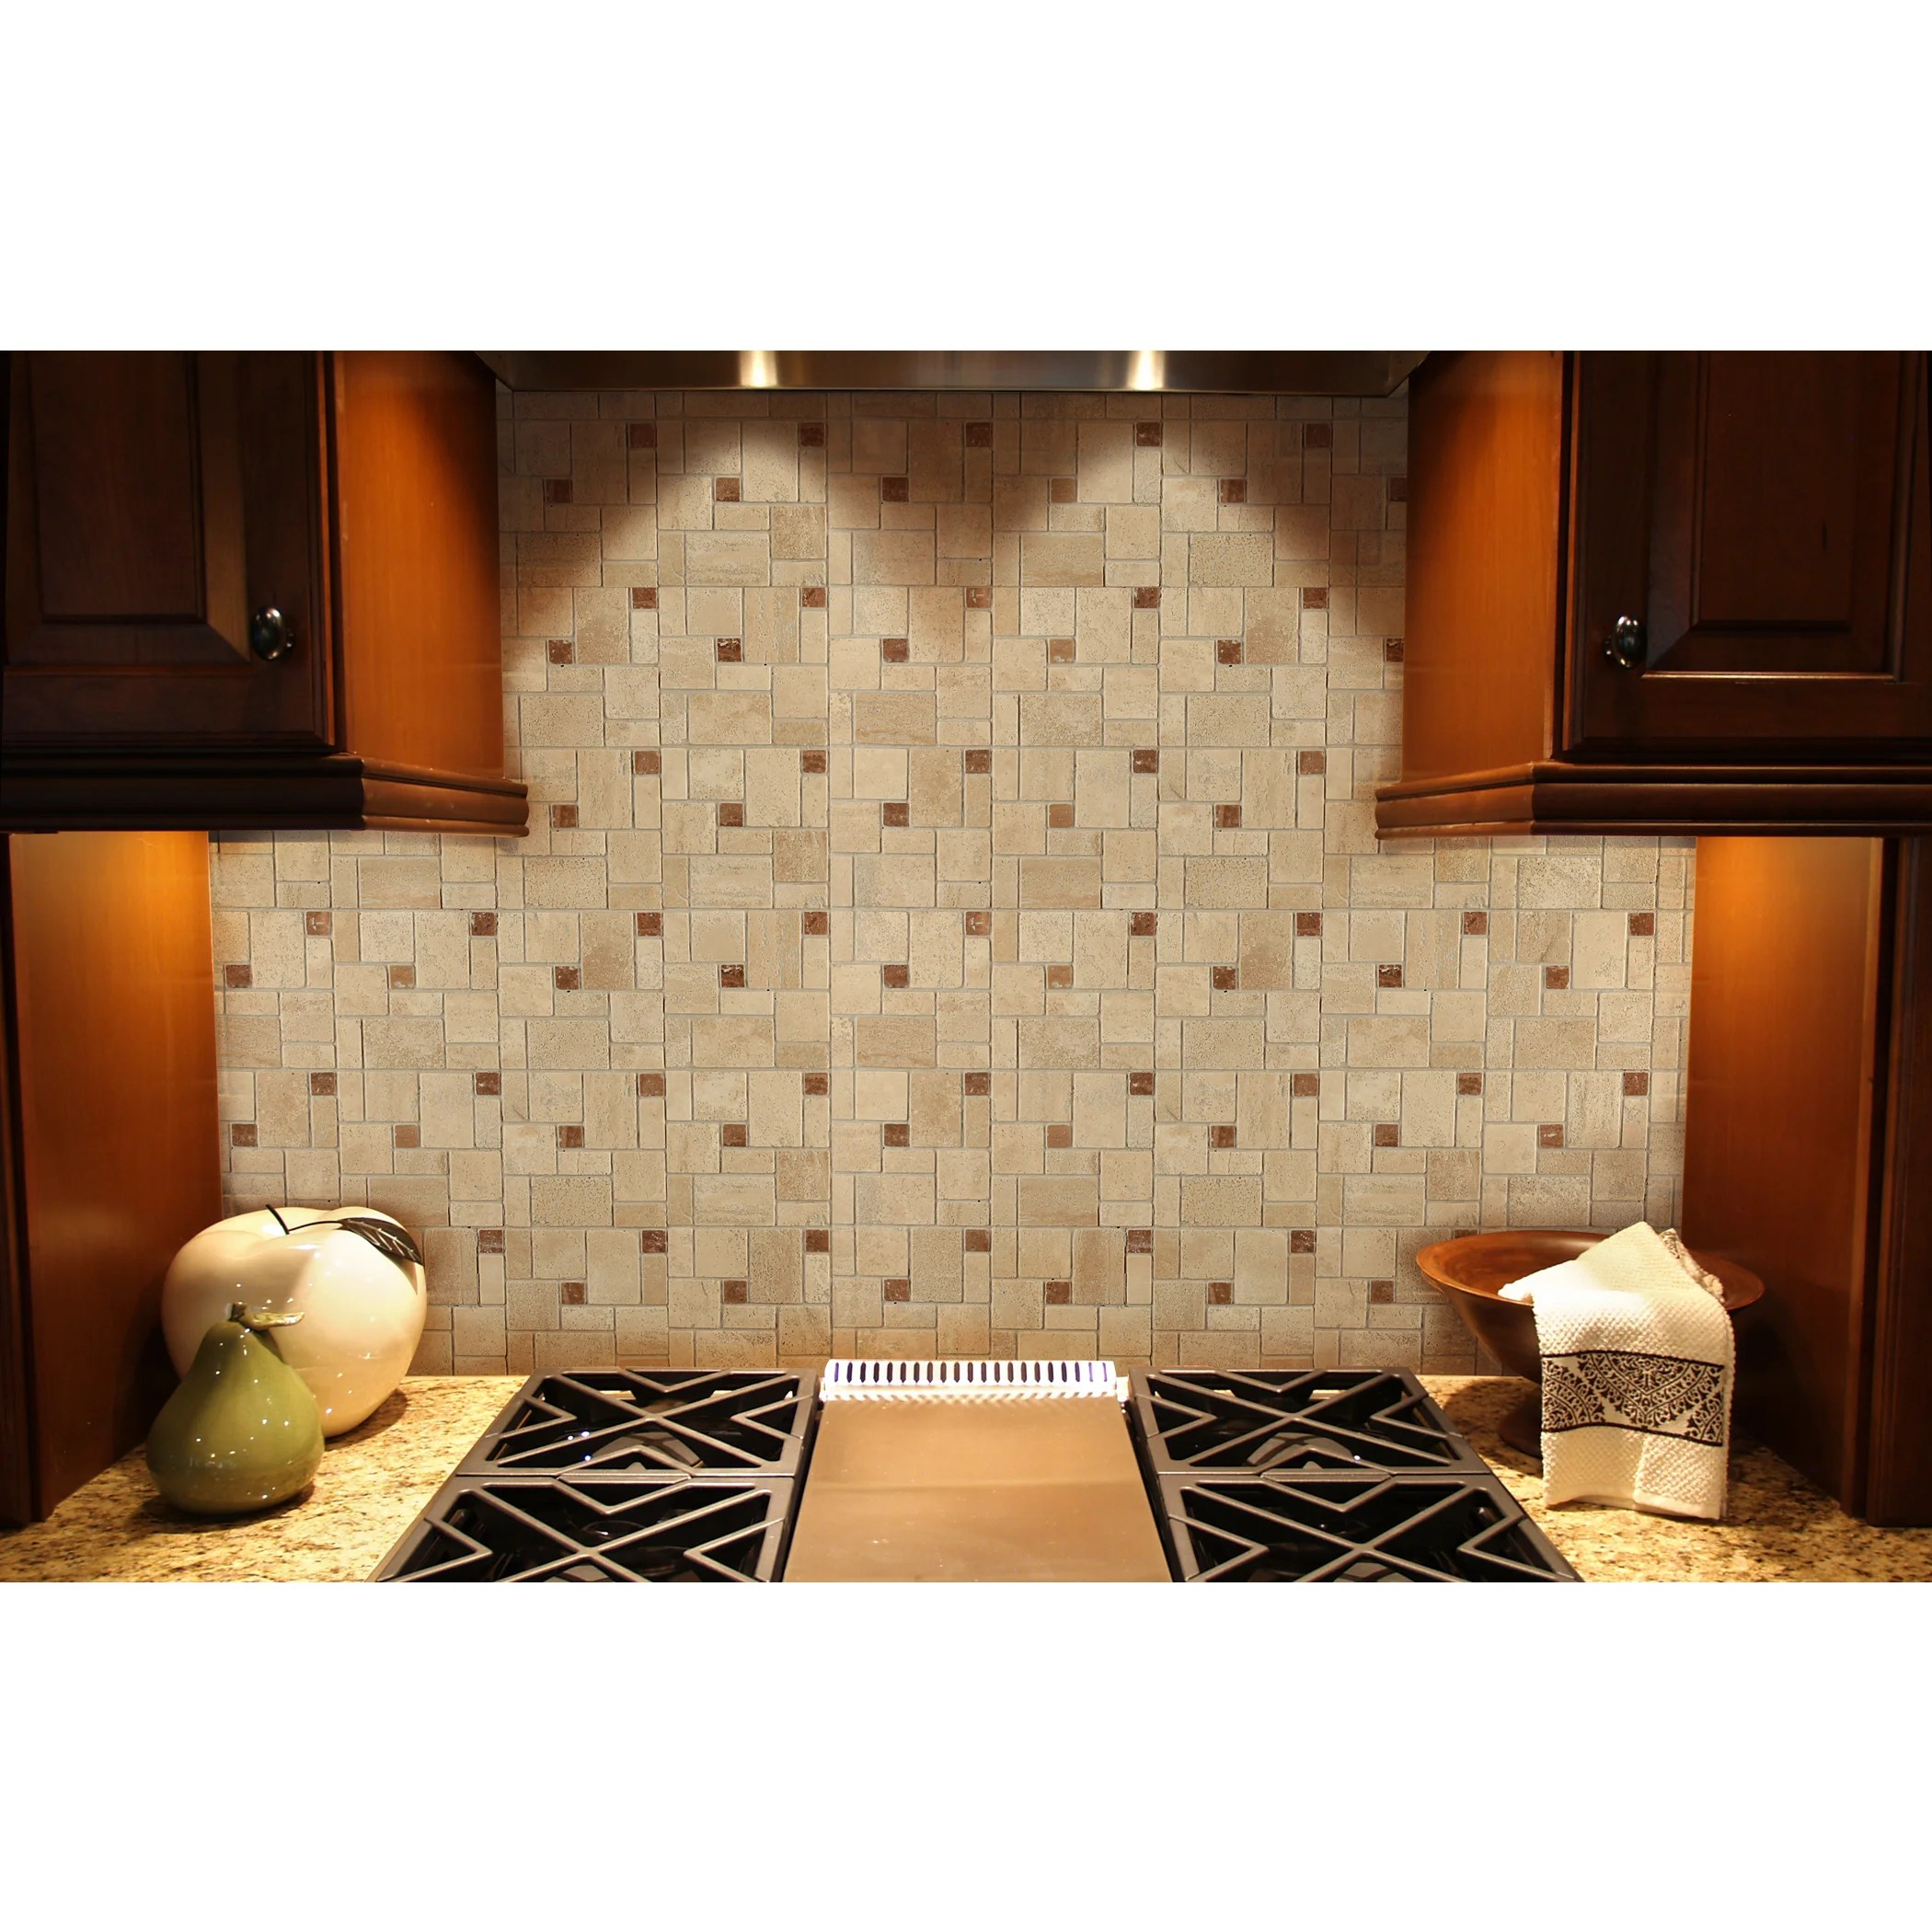 instant mosaic 12 x 12 tan beige and brown peel and stick natural stone tile 6 sq ft total